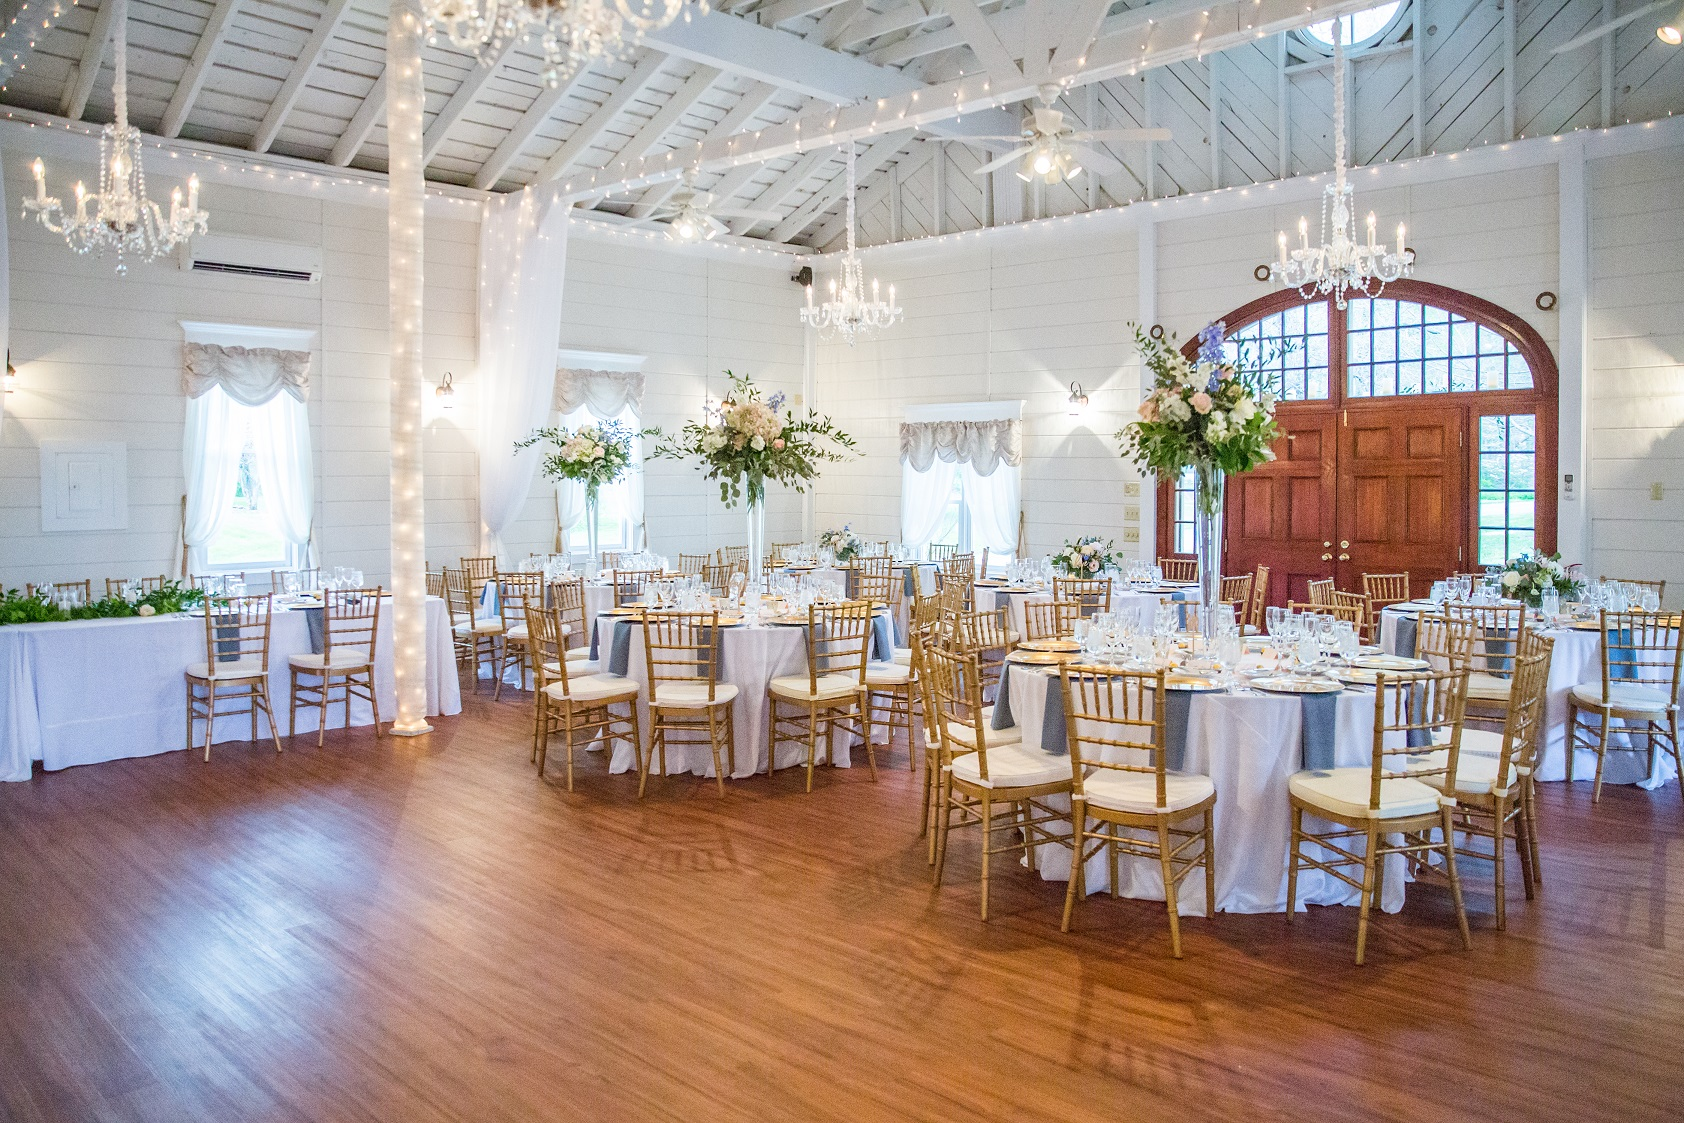 First Lady Wedding Venue Packages At Rosemont